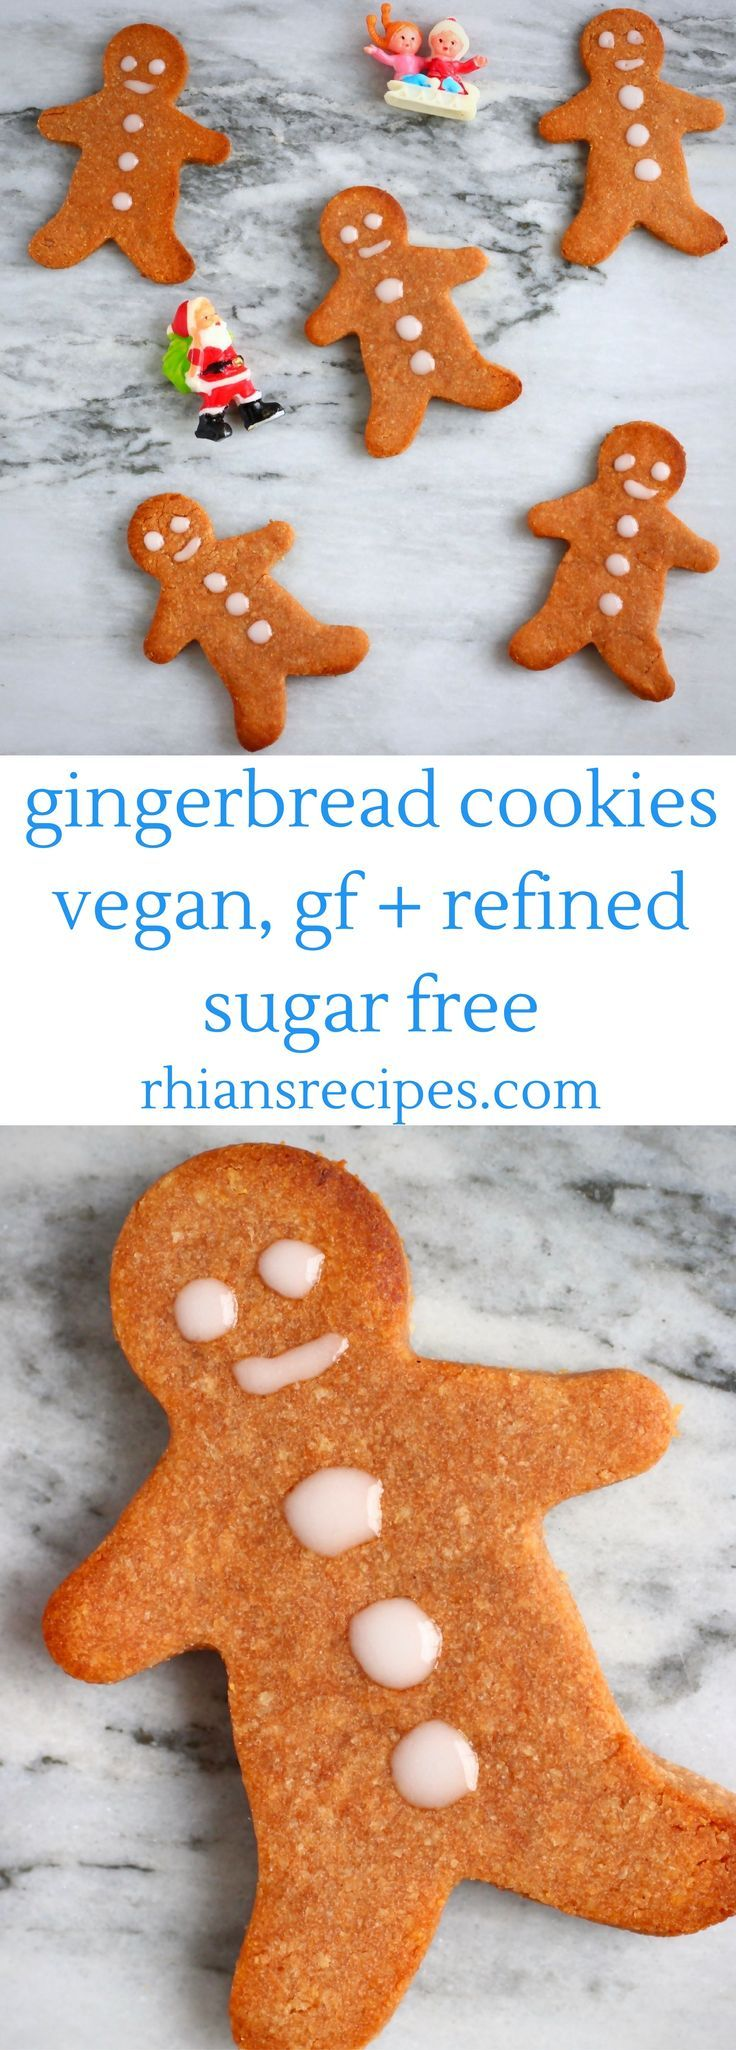 These Gluten-Free Vegan Gingerbread Cookies are crispy yet chewy, fragrantly spiced and super easy to make! Also refined sugar free.